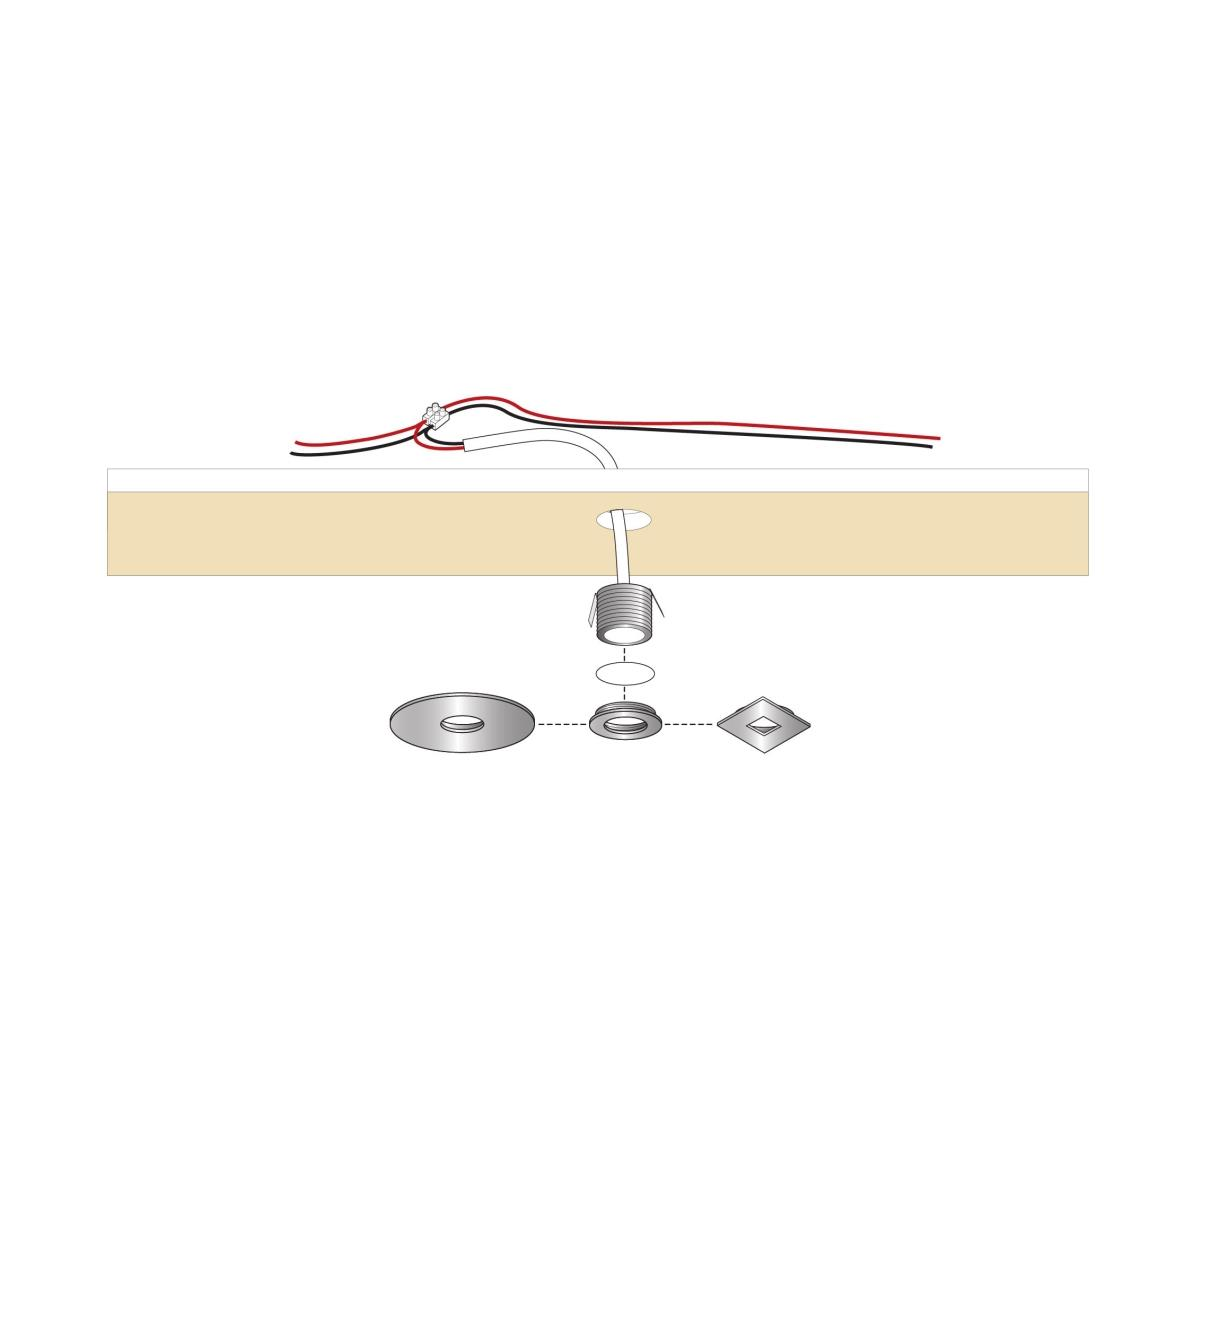 Illustration of three ring style options with cutaway view of a mini recessed light being installed